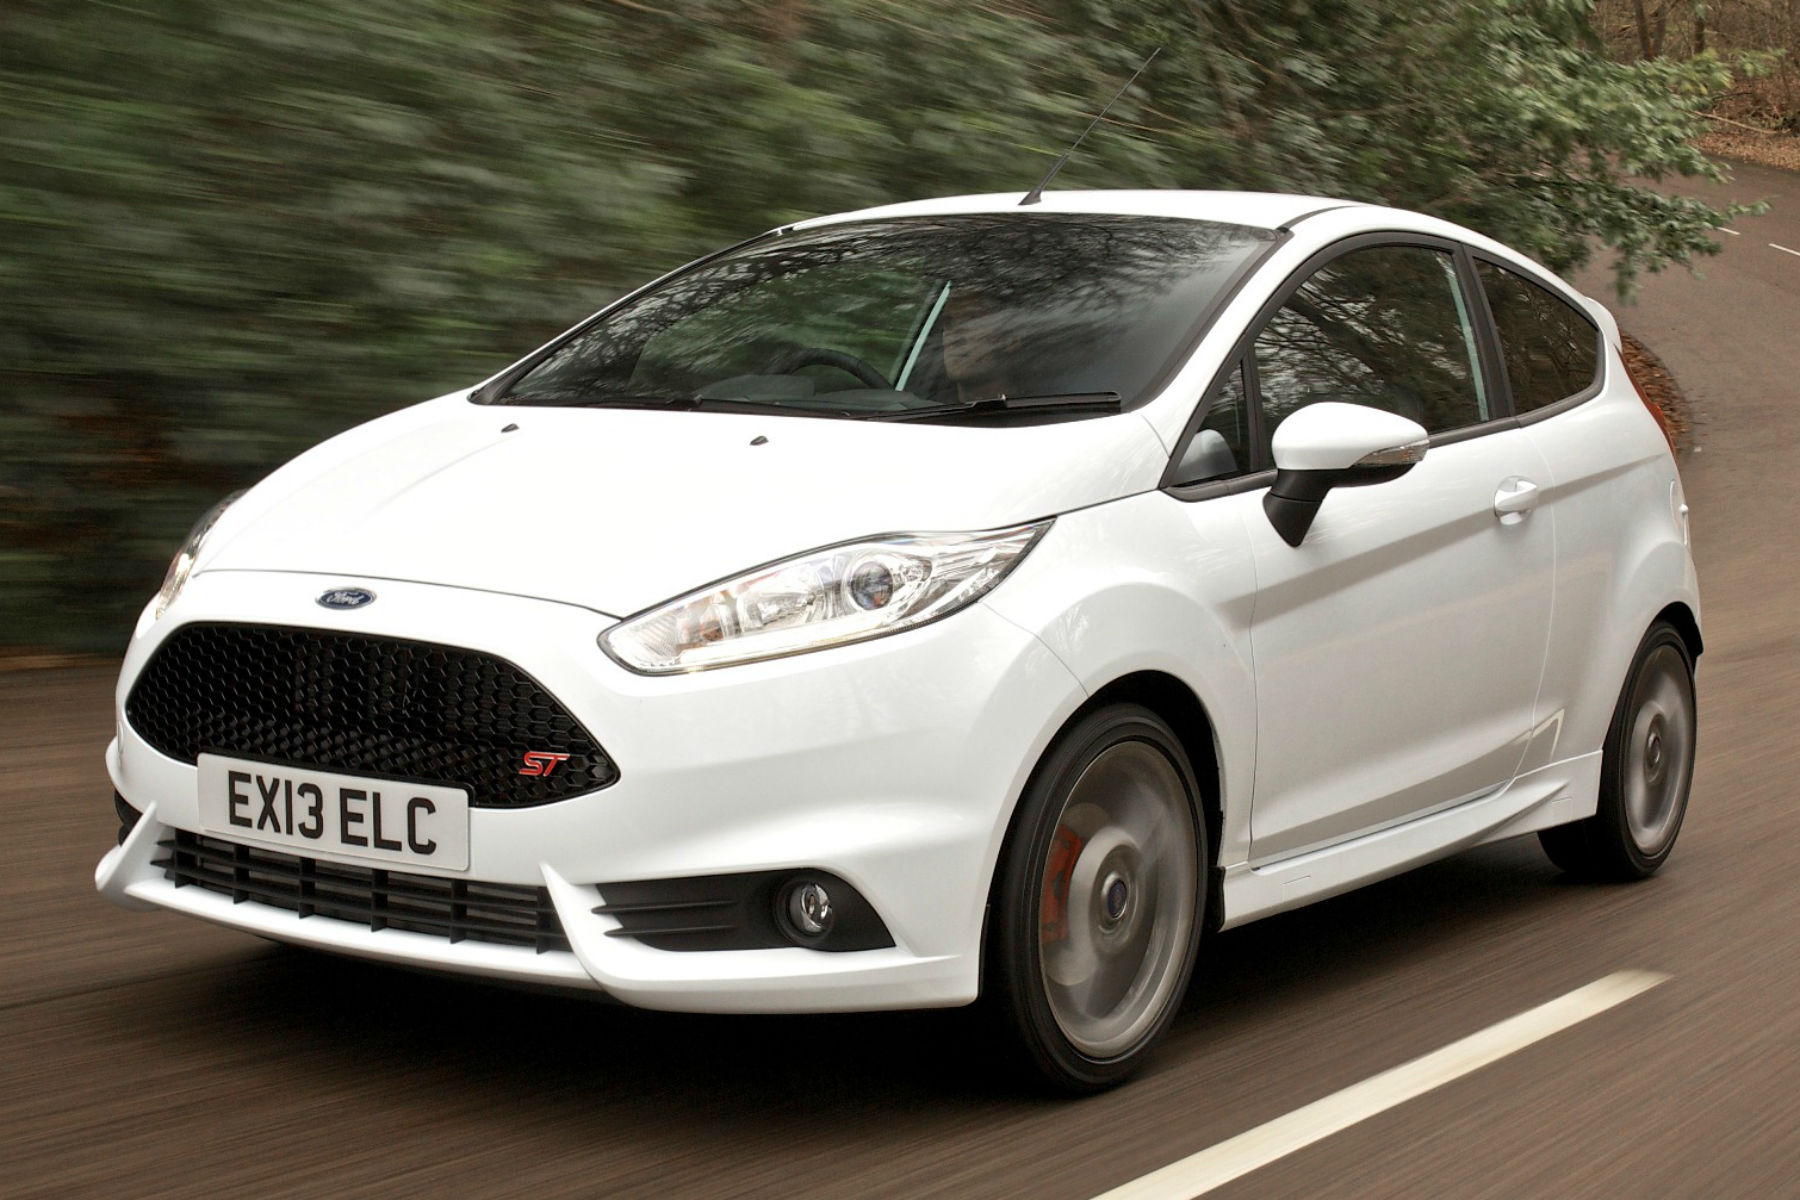 10 unmissable UK car deals